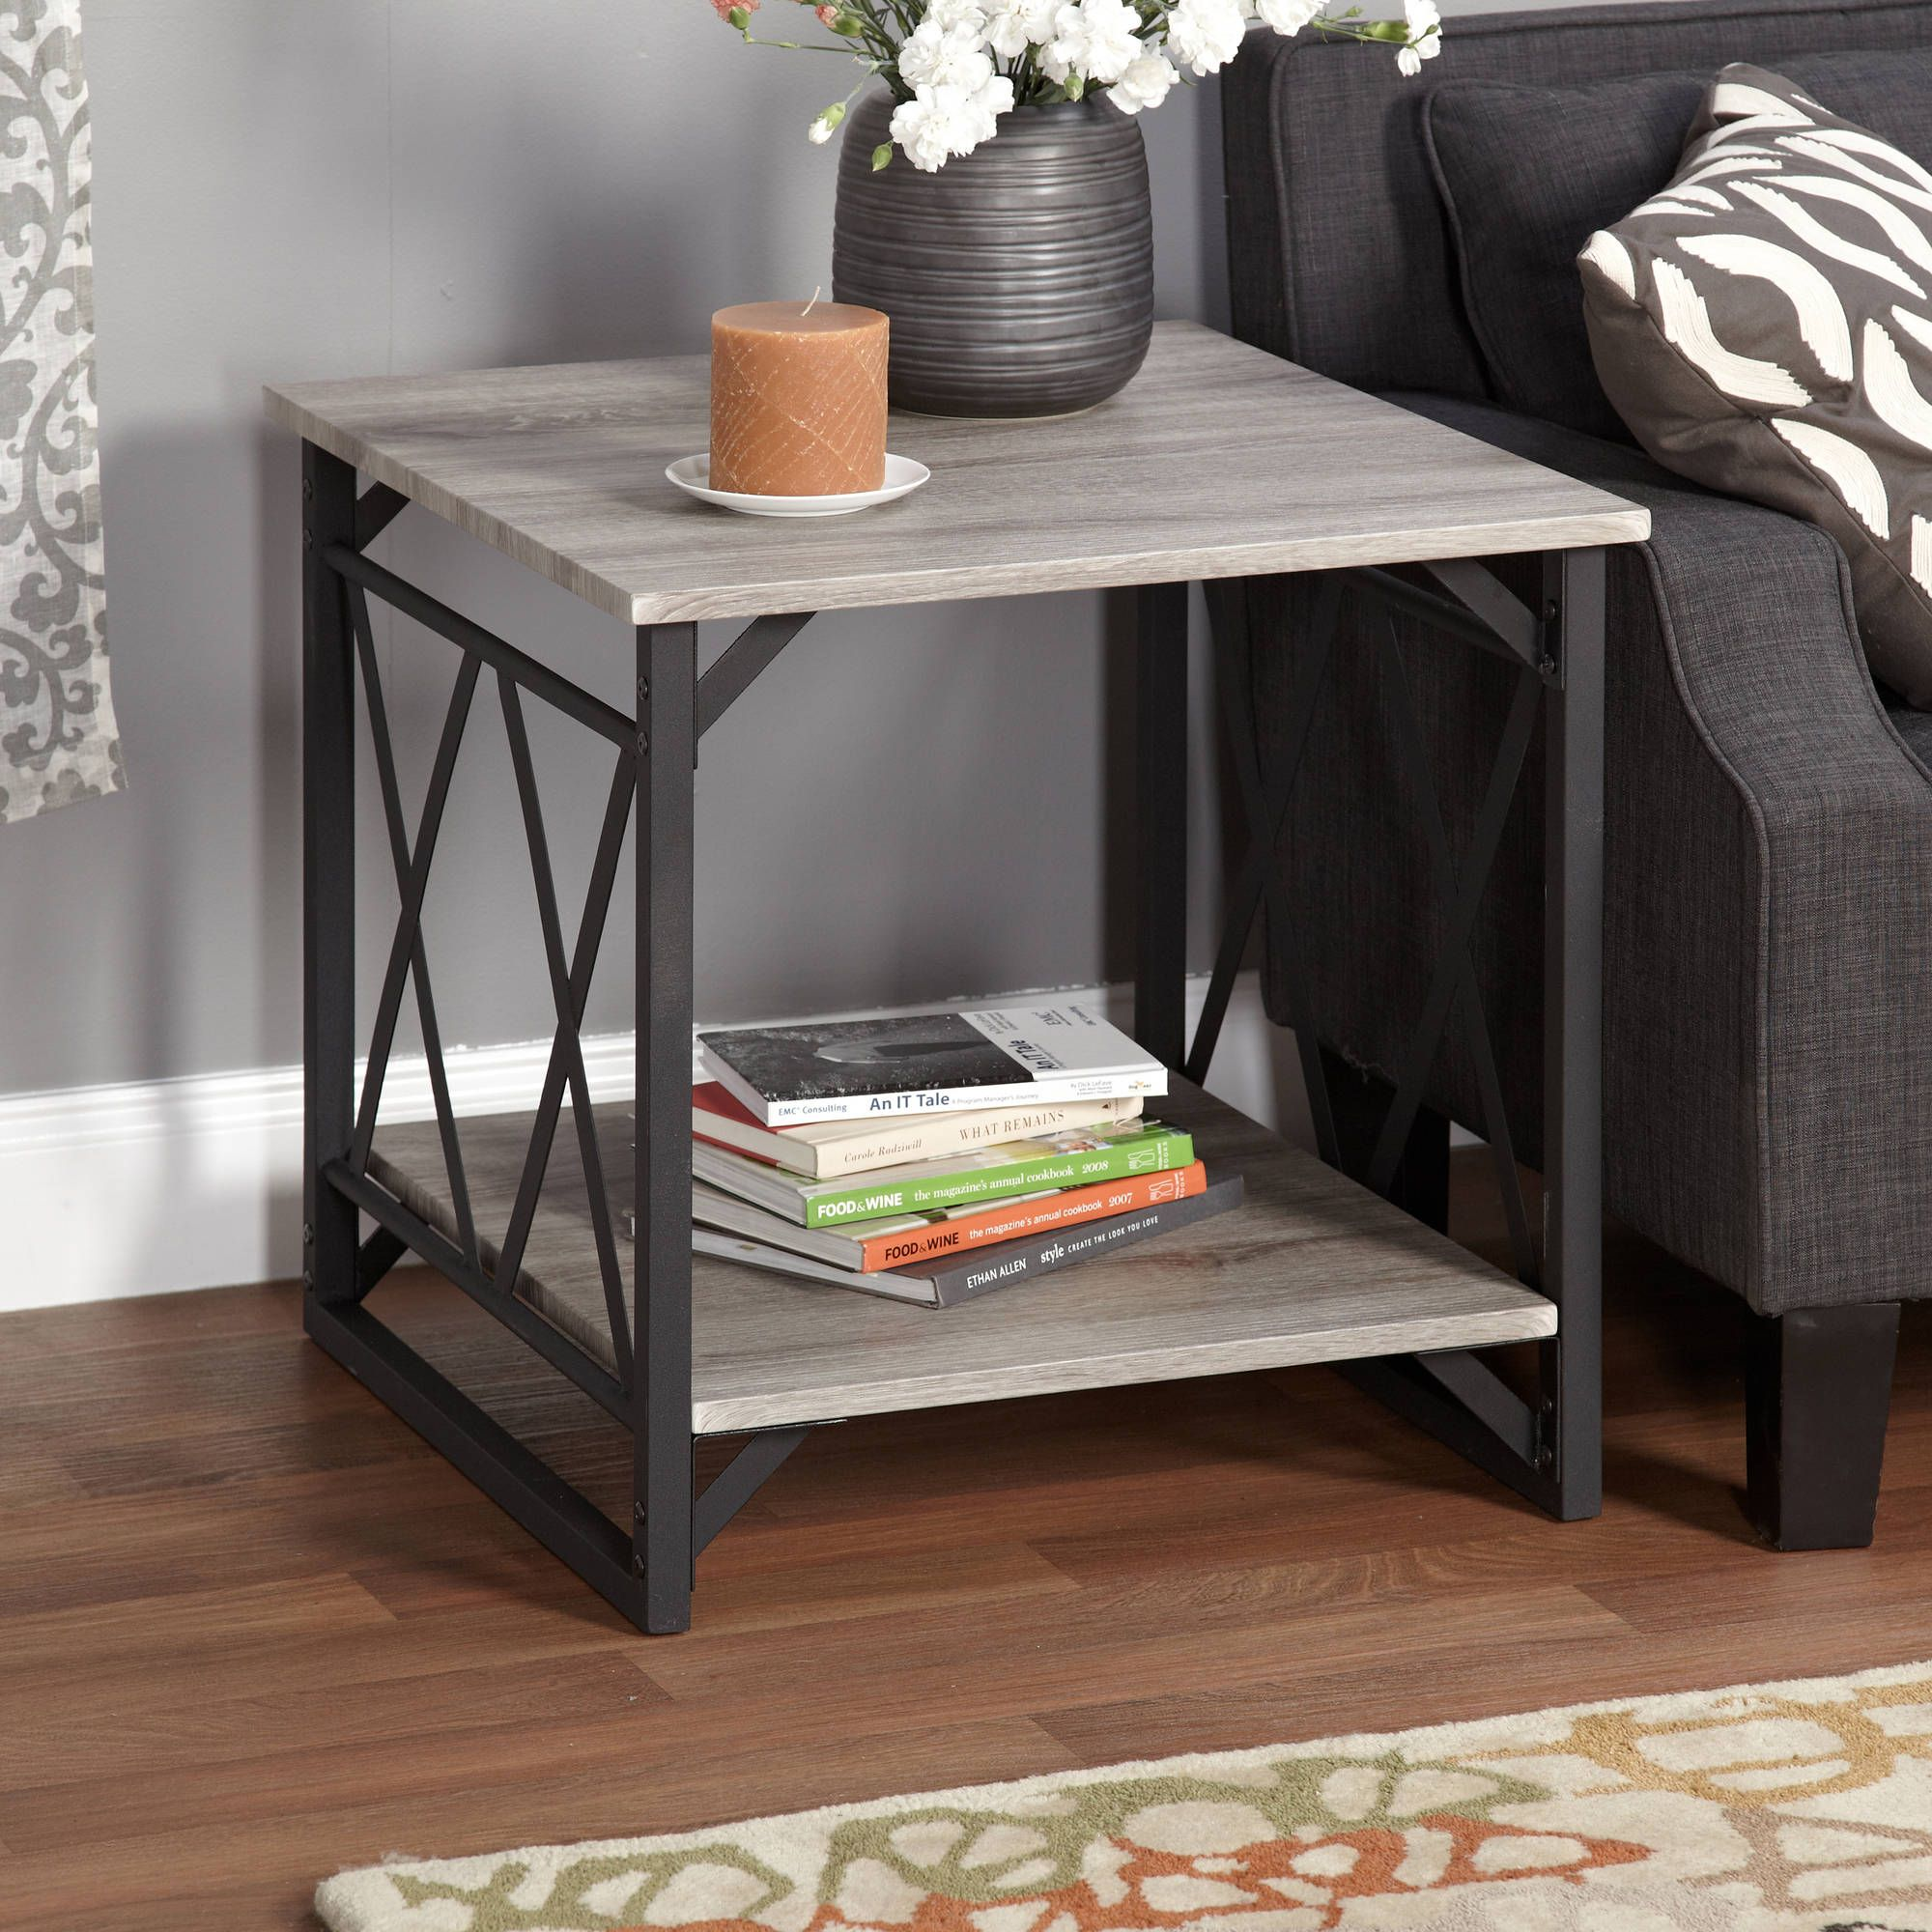 Best Home Black End Tables Sofa Table Decor End Tables 400 x 300